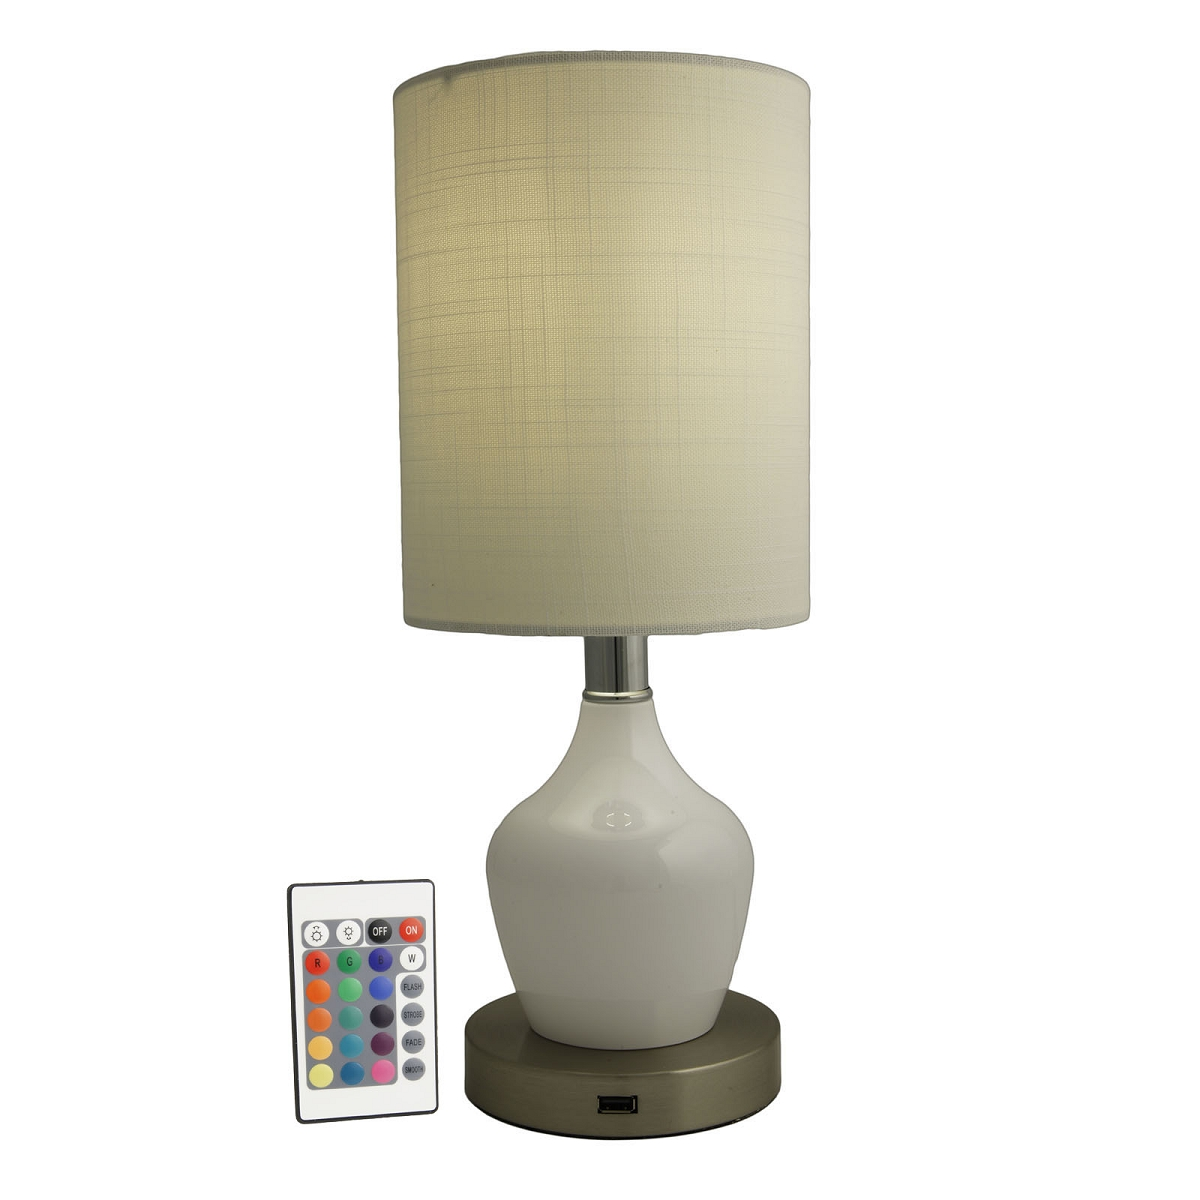 sc 1 st  Flipo Group & Rely-a-Light Lamp Angel Decorative Emergency Light and Phone Charger